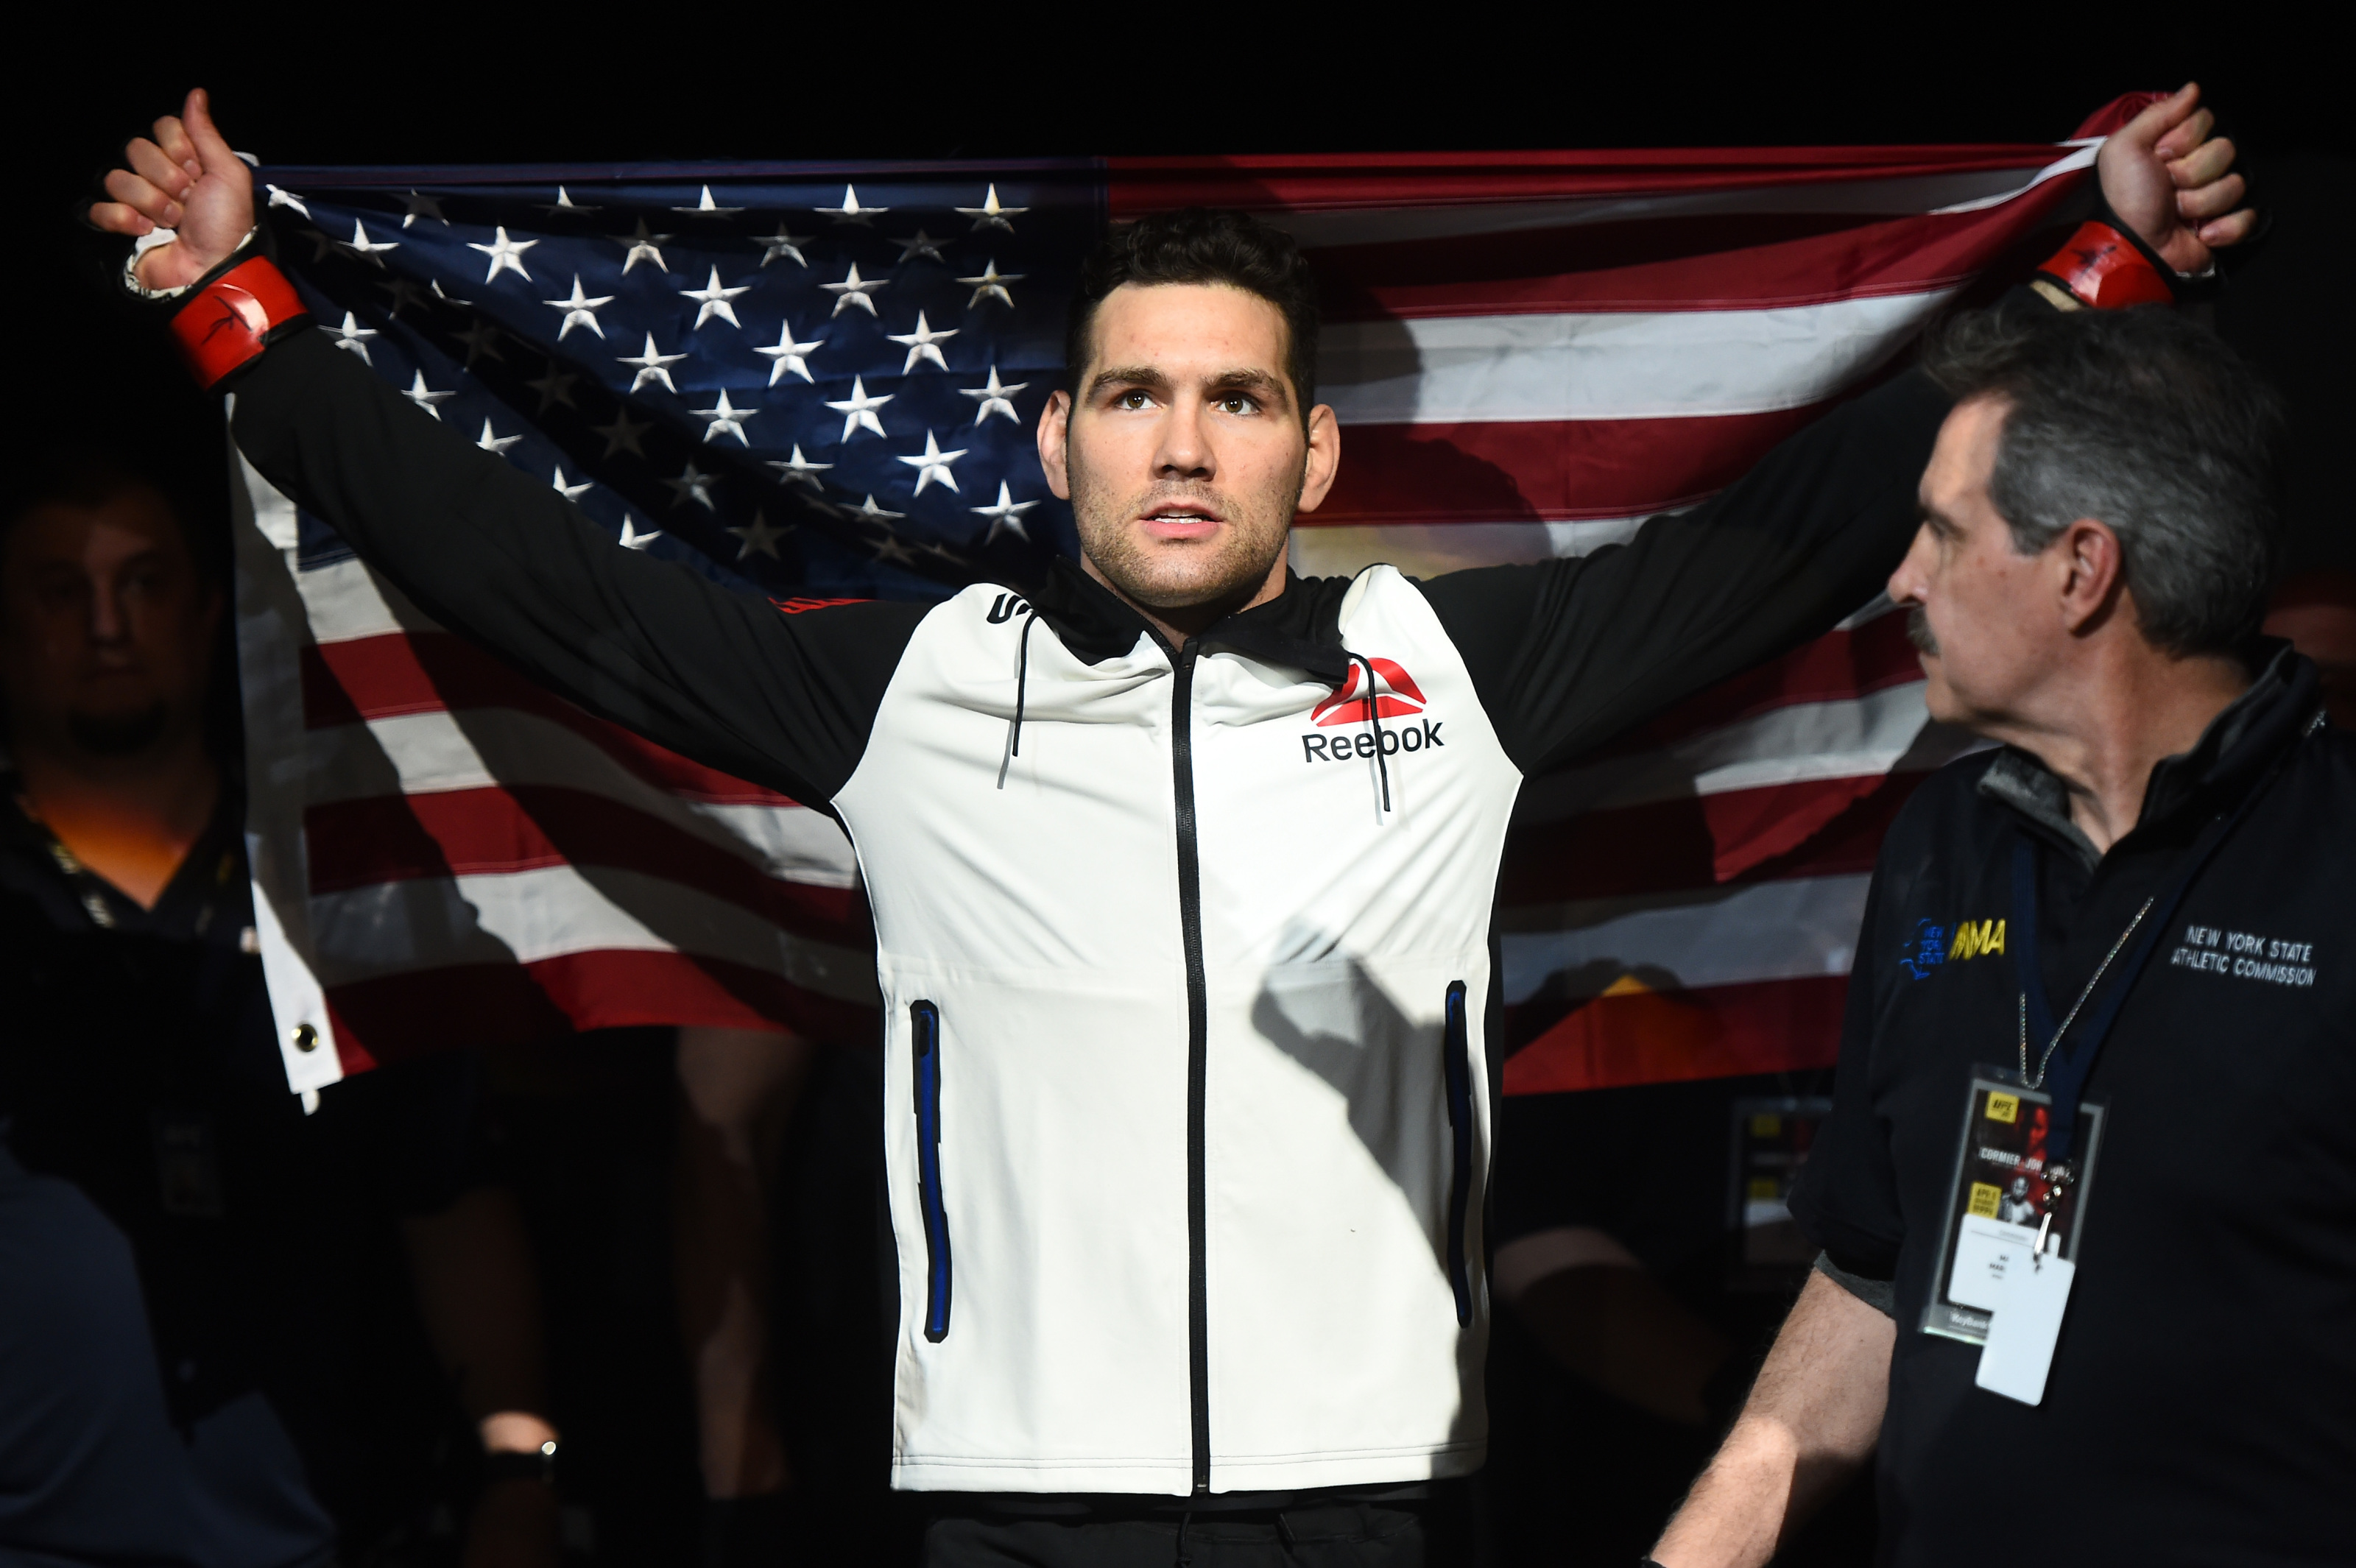 What exactly is the UFC doing with Chris Weidman?